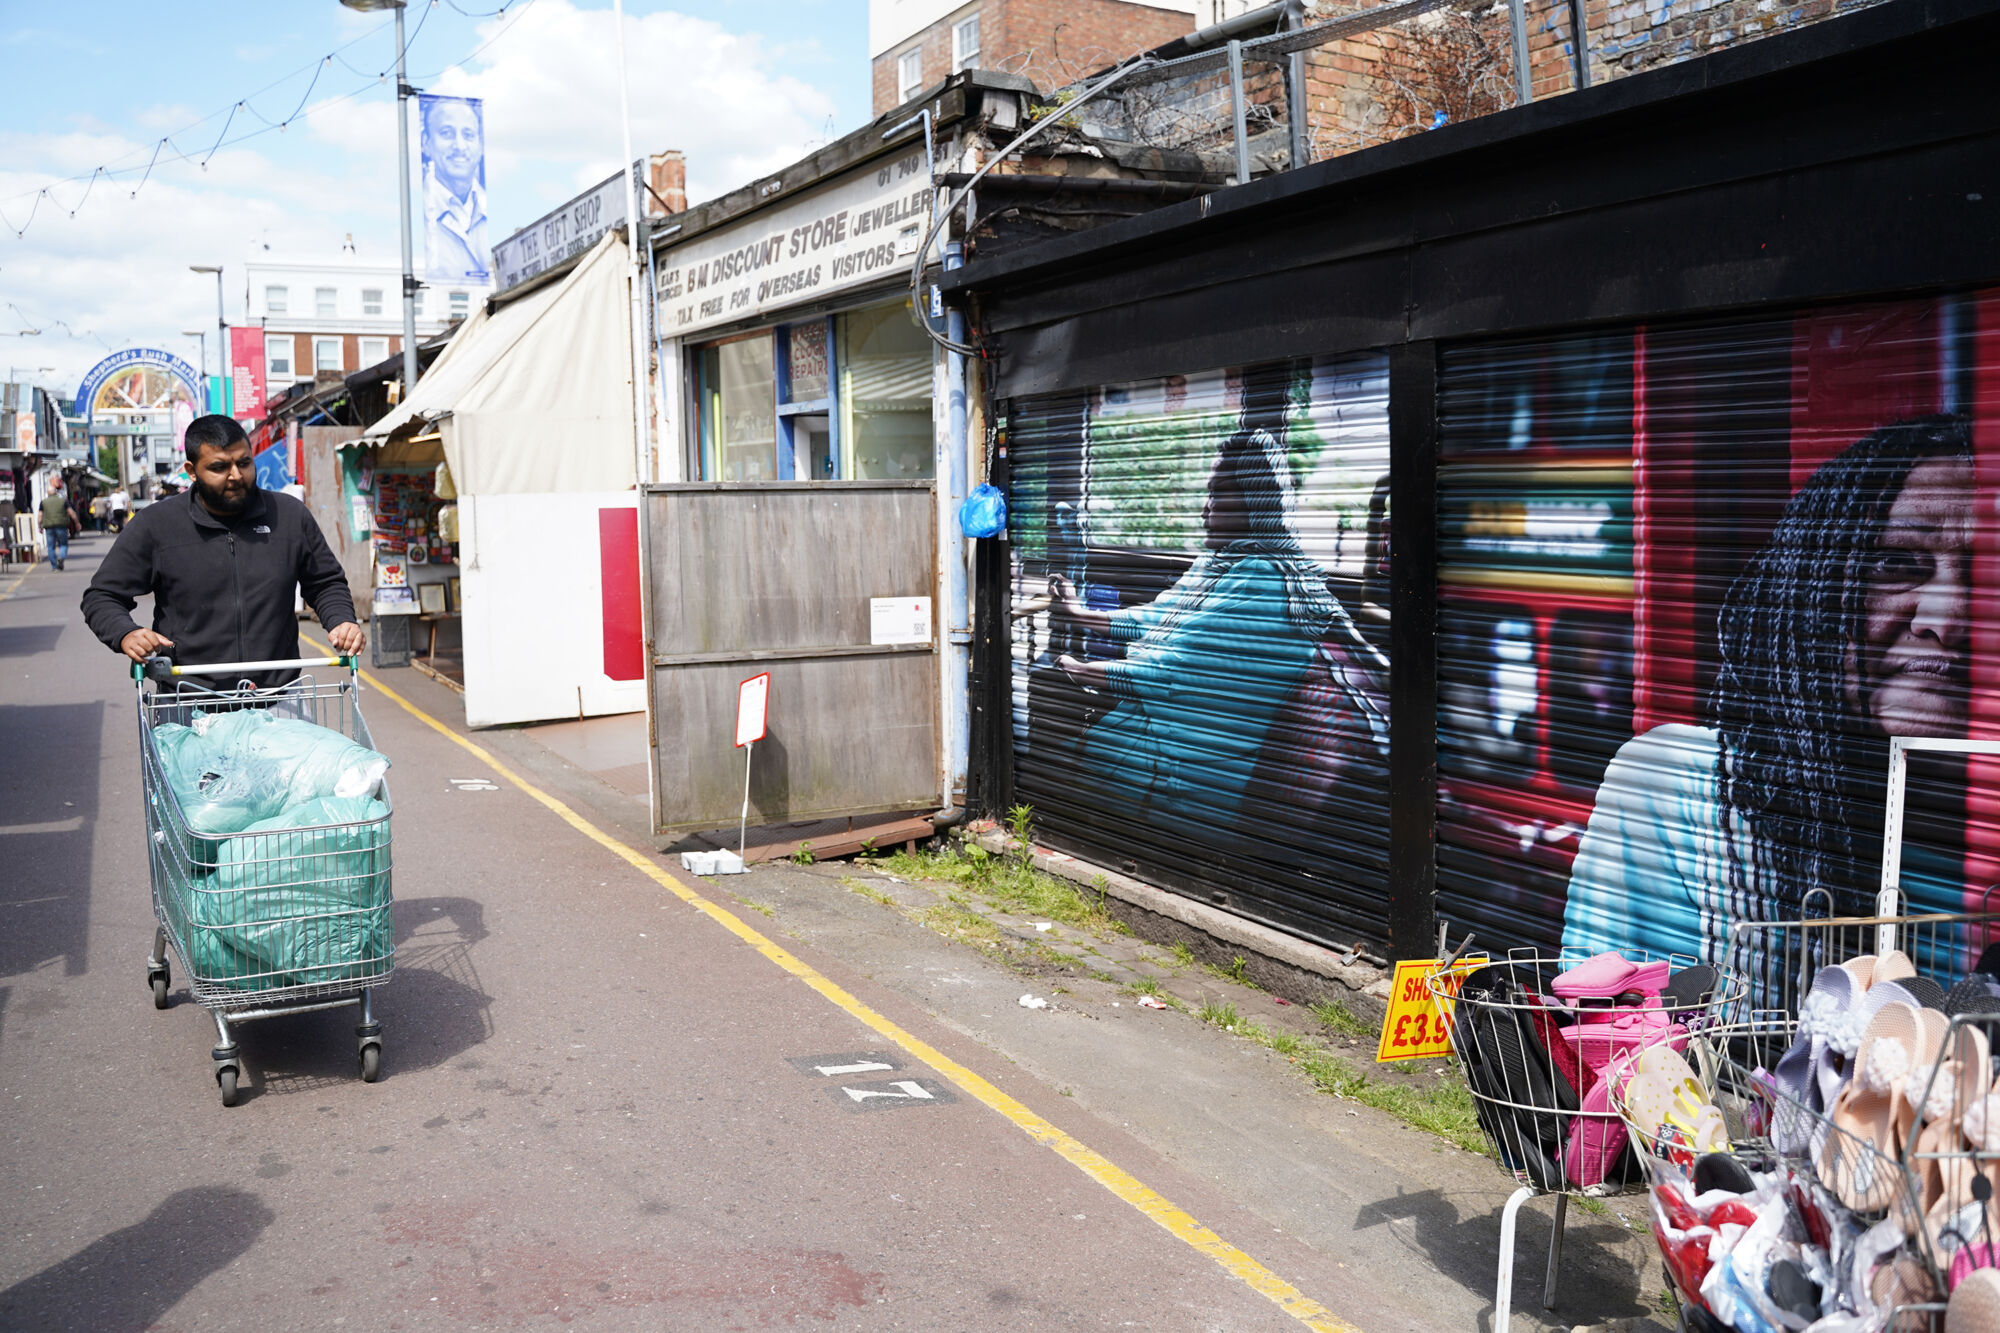 Large scale mural installed in a busy market